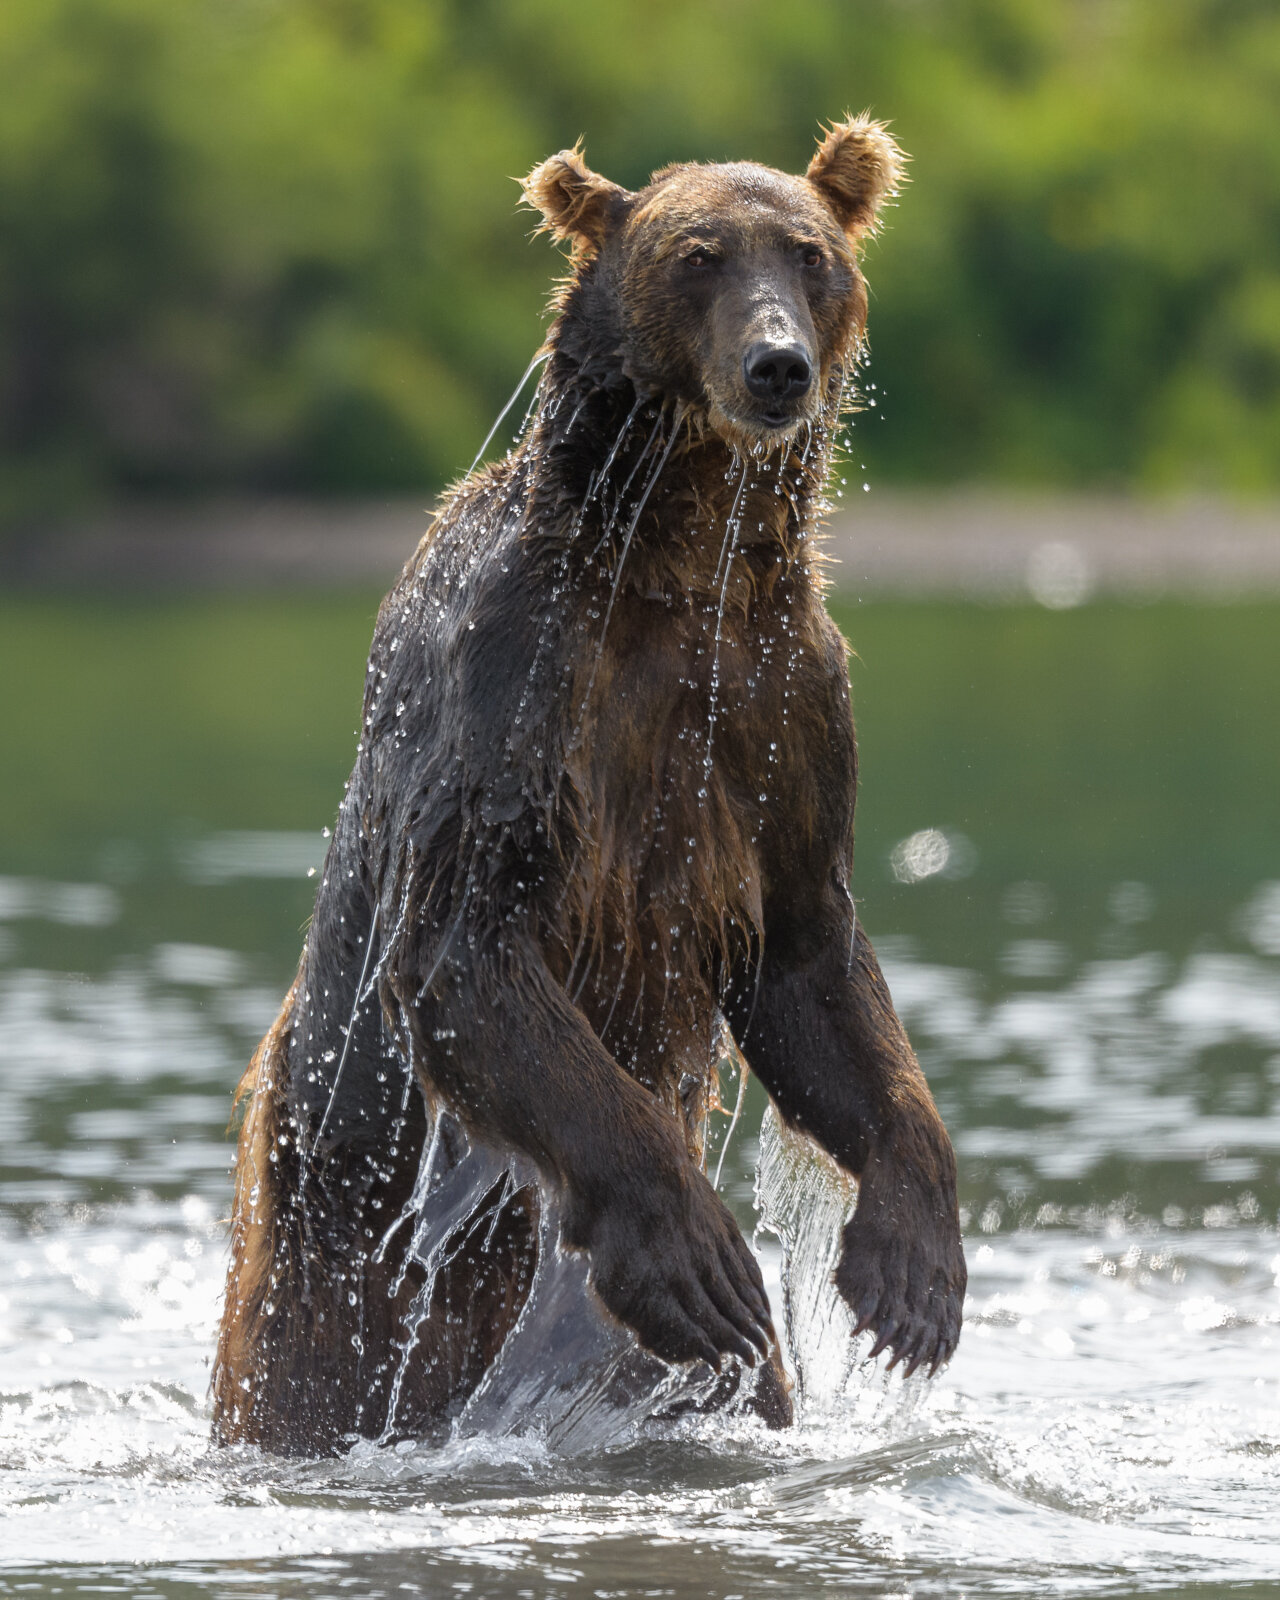 Brown bear rises on its hind legs to search for fish in Kurile L